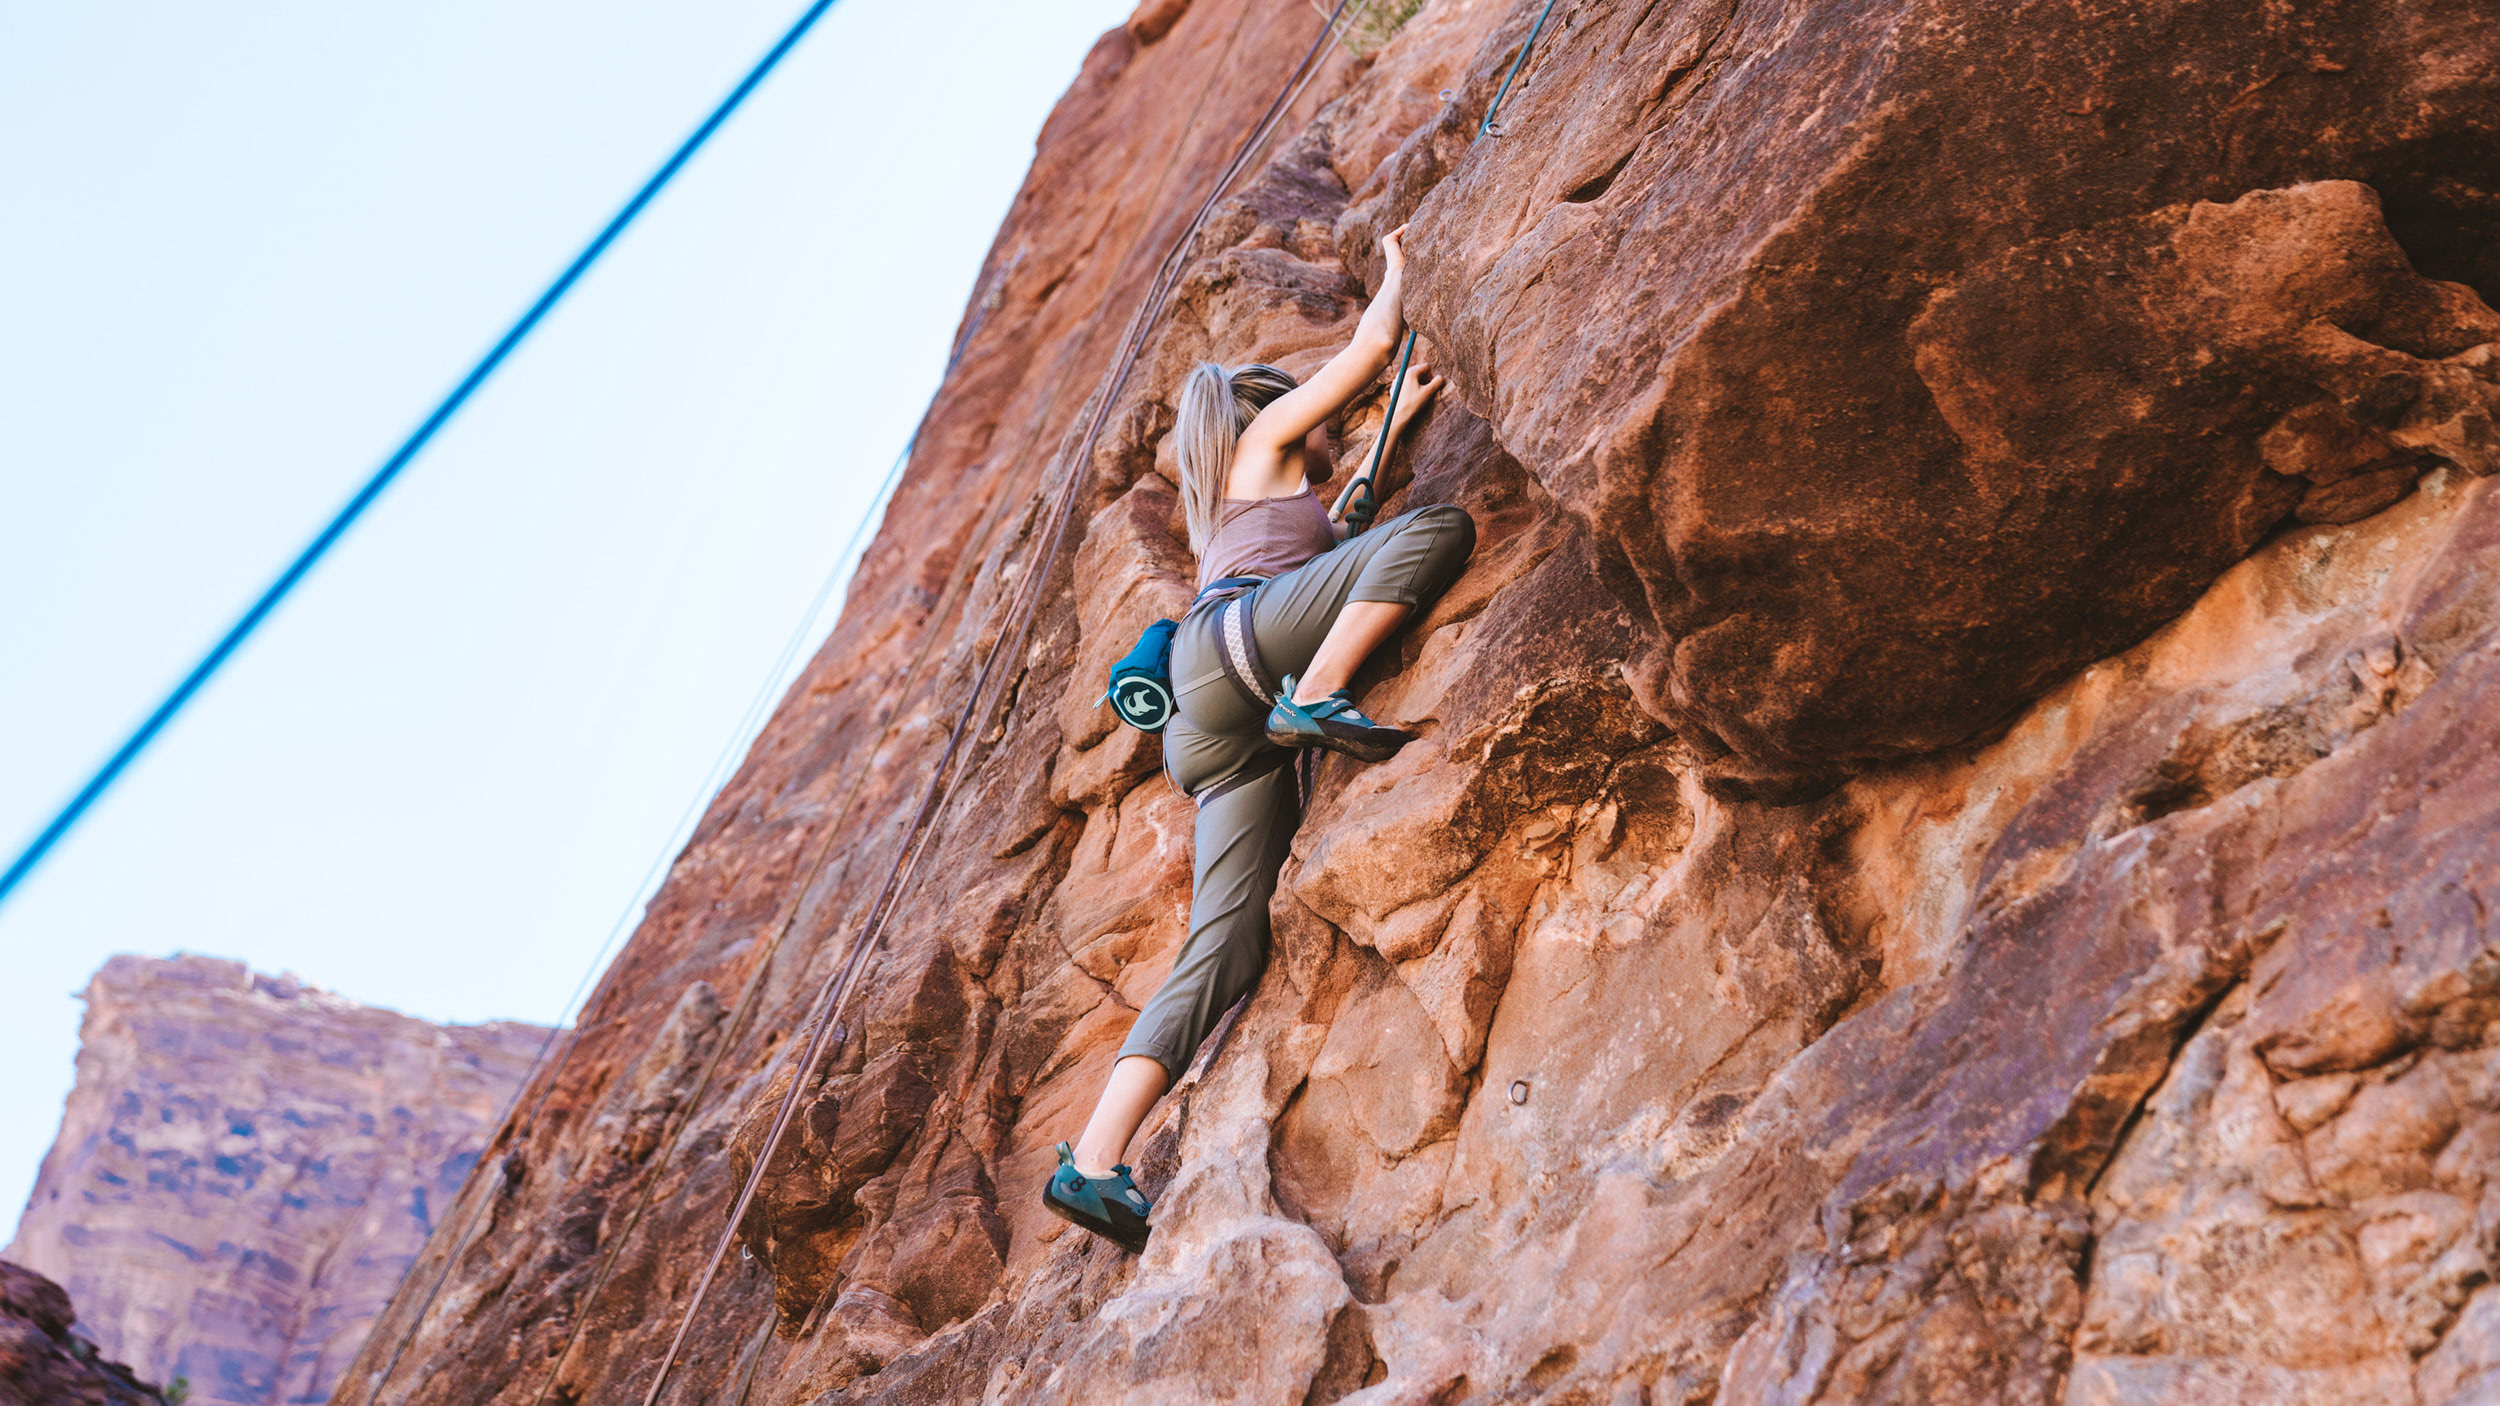 Experiencing Desert Climbing and Biking for the First Time Moab Rock Climbing with Backcountry Banner